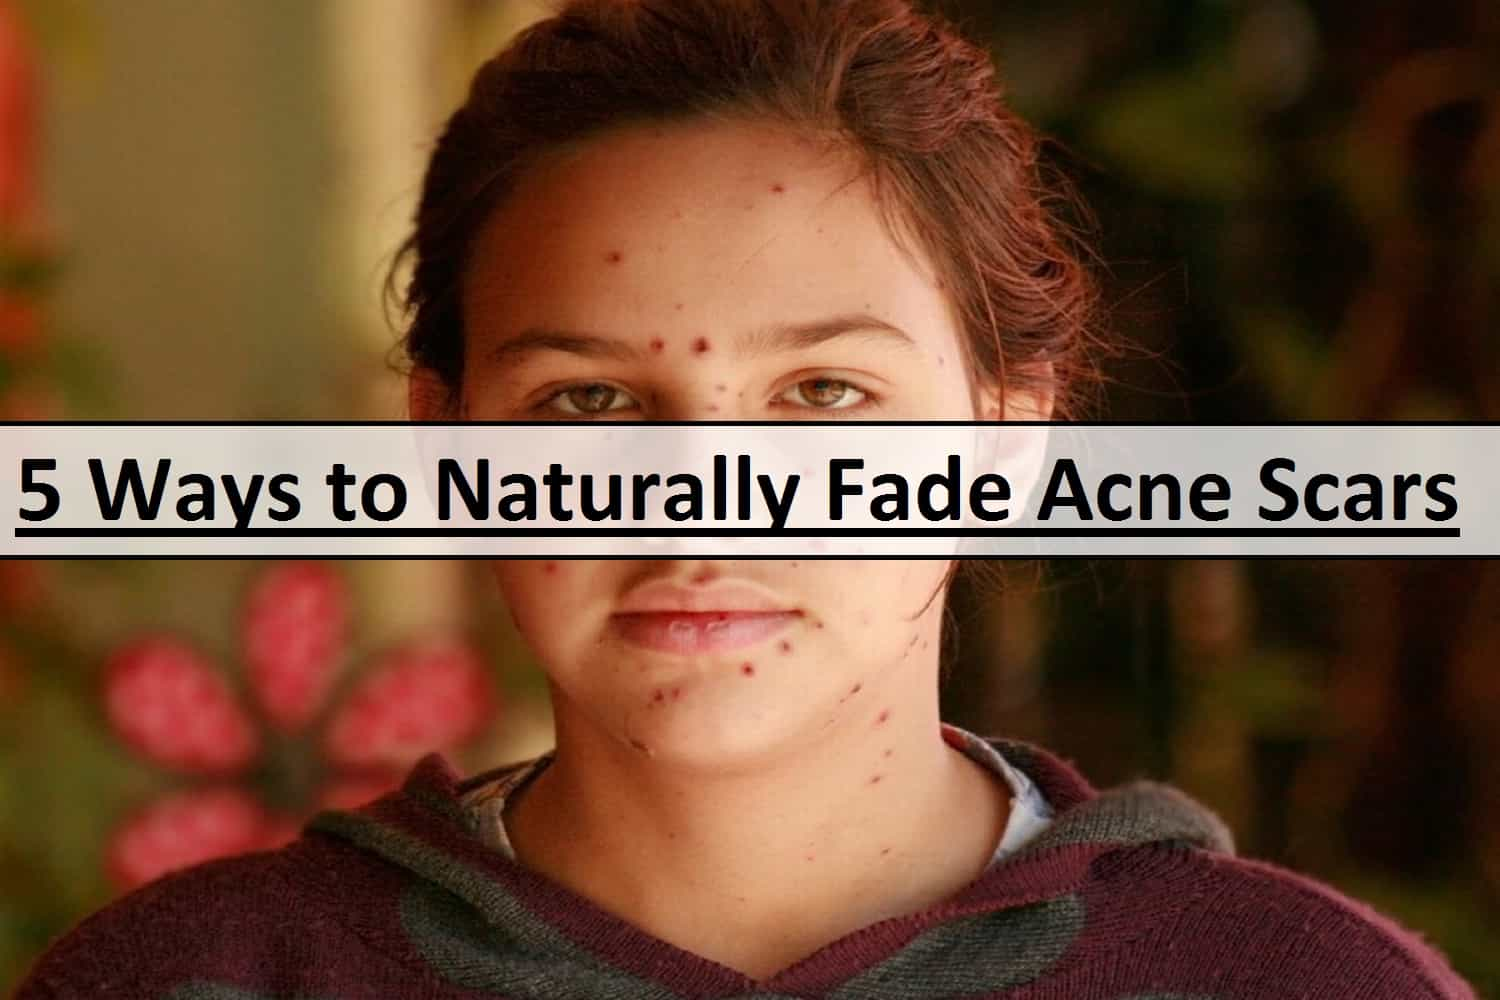 5 Ways to Naturally Fade Acne Scars